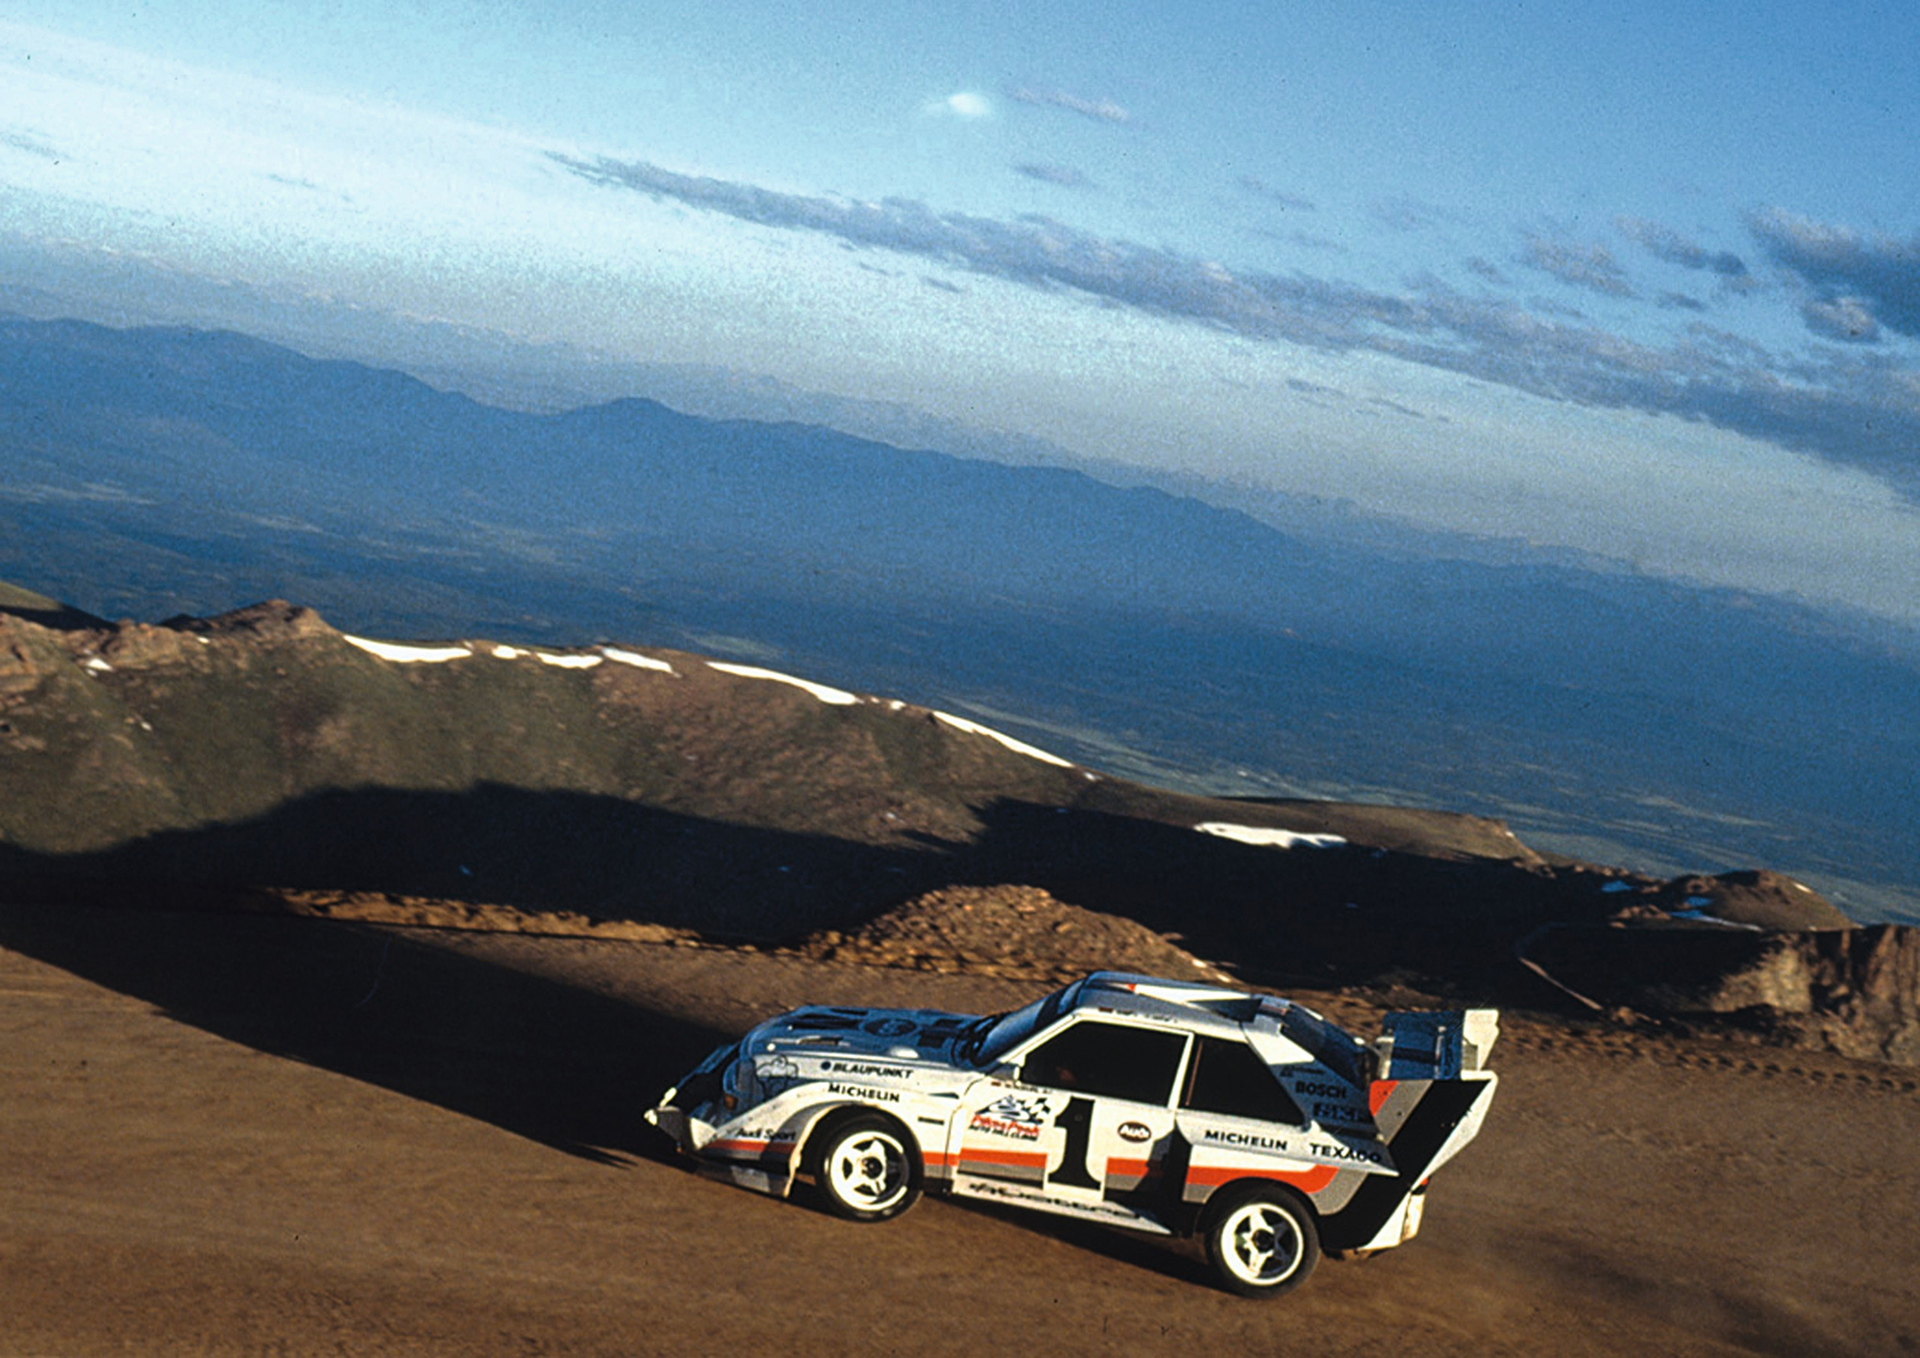 Audi Sport quattro S1 Pikes Peak - photo - side-face / profil